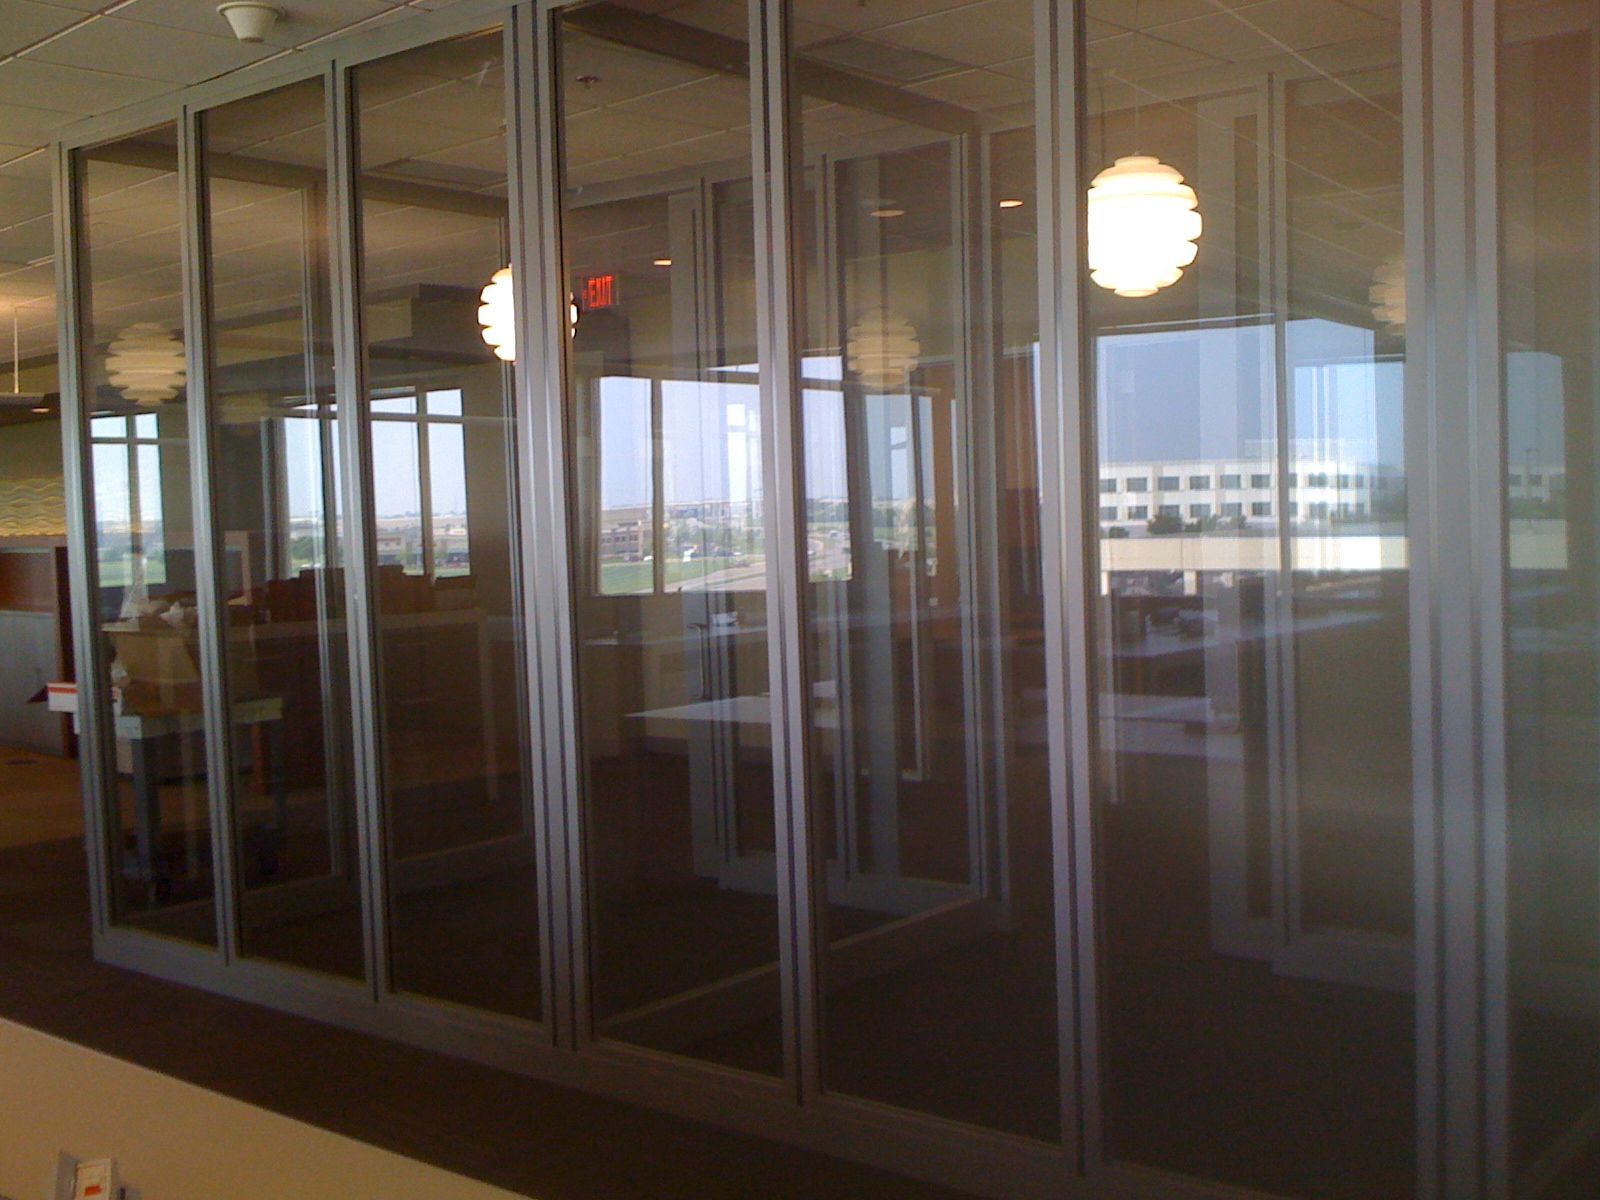 Commercial Office Window Tinting In Plano Tx For Capital Home Decorators Catalog Best Ideas of Home Decor and Design [homedecoratorscatalog.us]